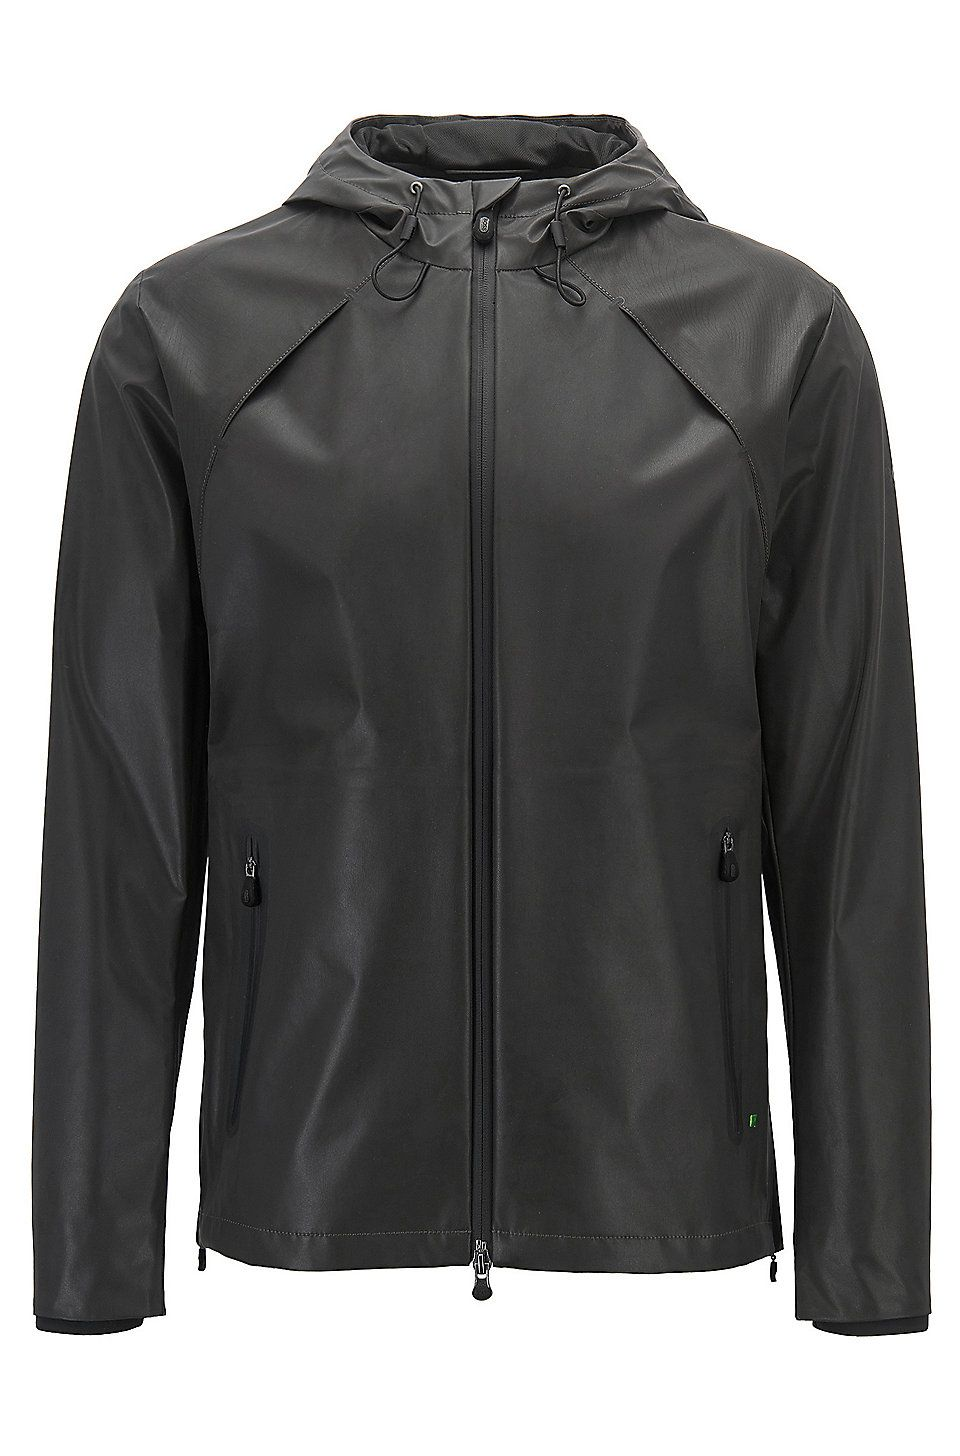 2877526a3930 HUGO BOSS Reflective softshell jacket in water-repellent fabric - Black  Casual Jackets from BOSS for Men in the official HUGO BOSS Online Store  free ...